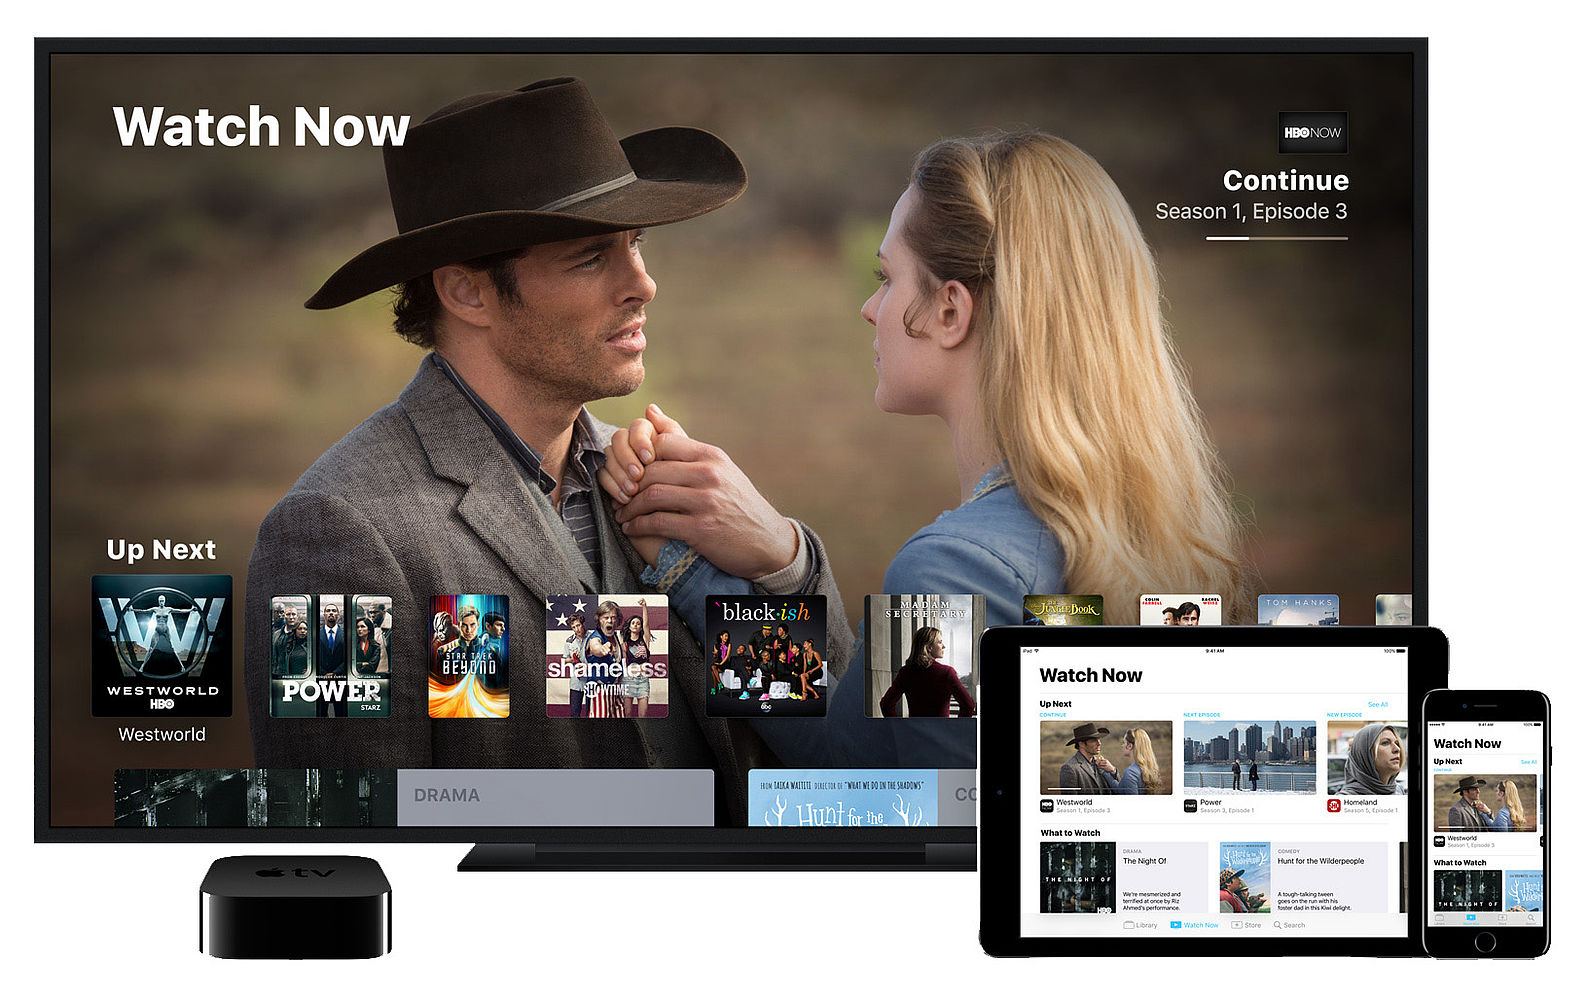 Mockup of the new TV app for Apple TV, iPhone, and iPad